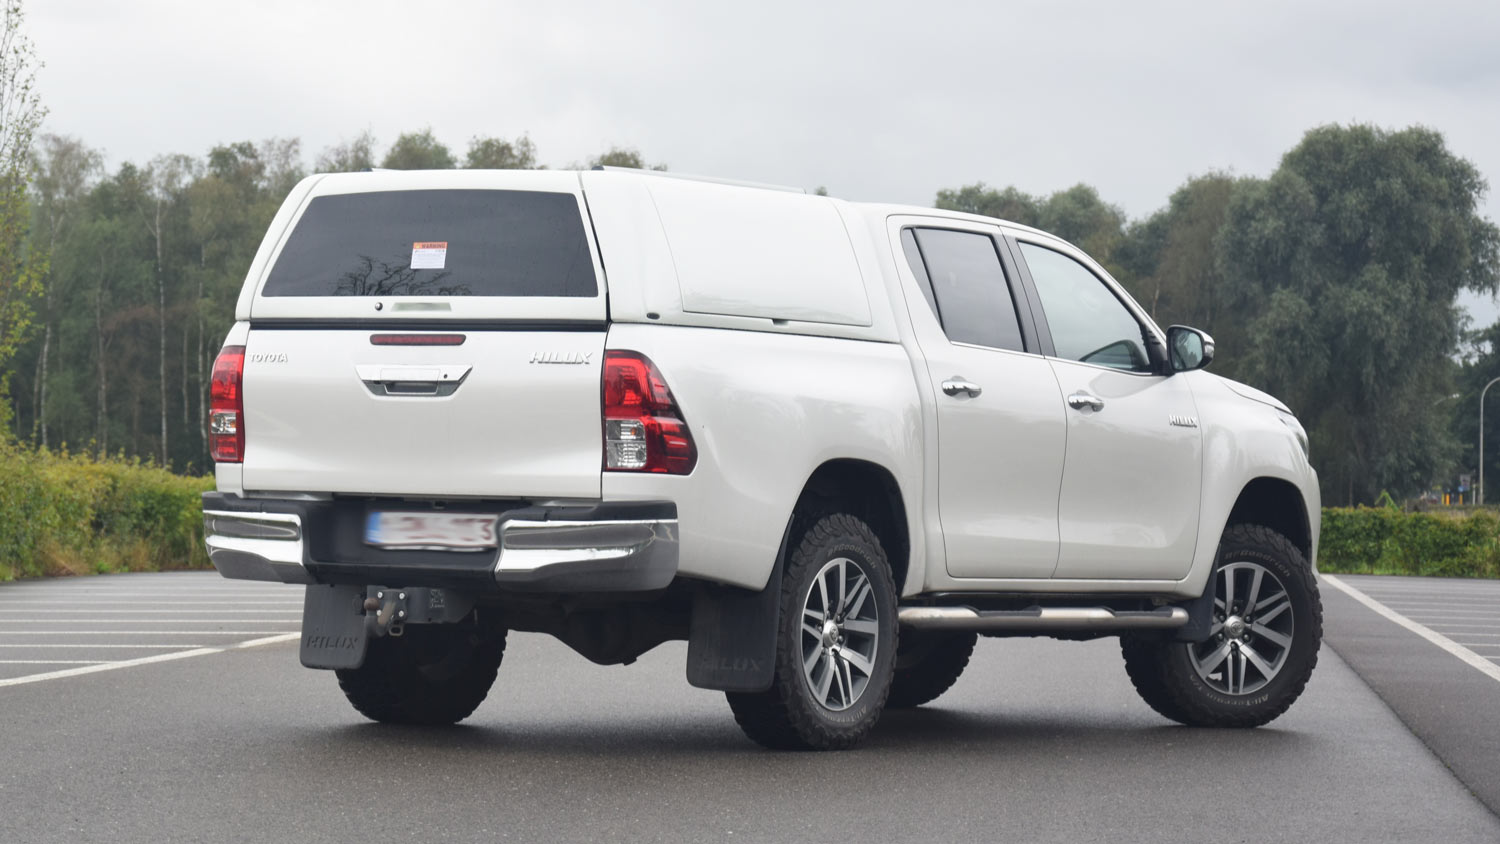 Force Pro Plus Canopy on Toyota Hilux 2016 - Image 4